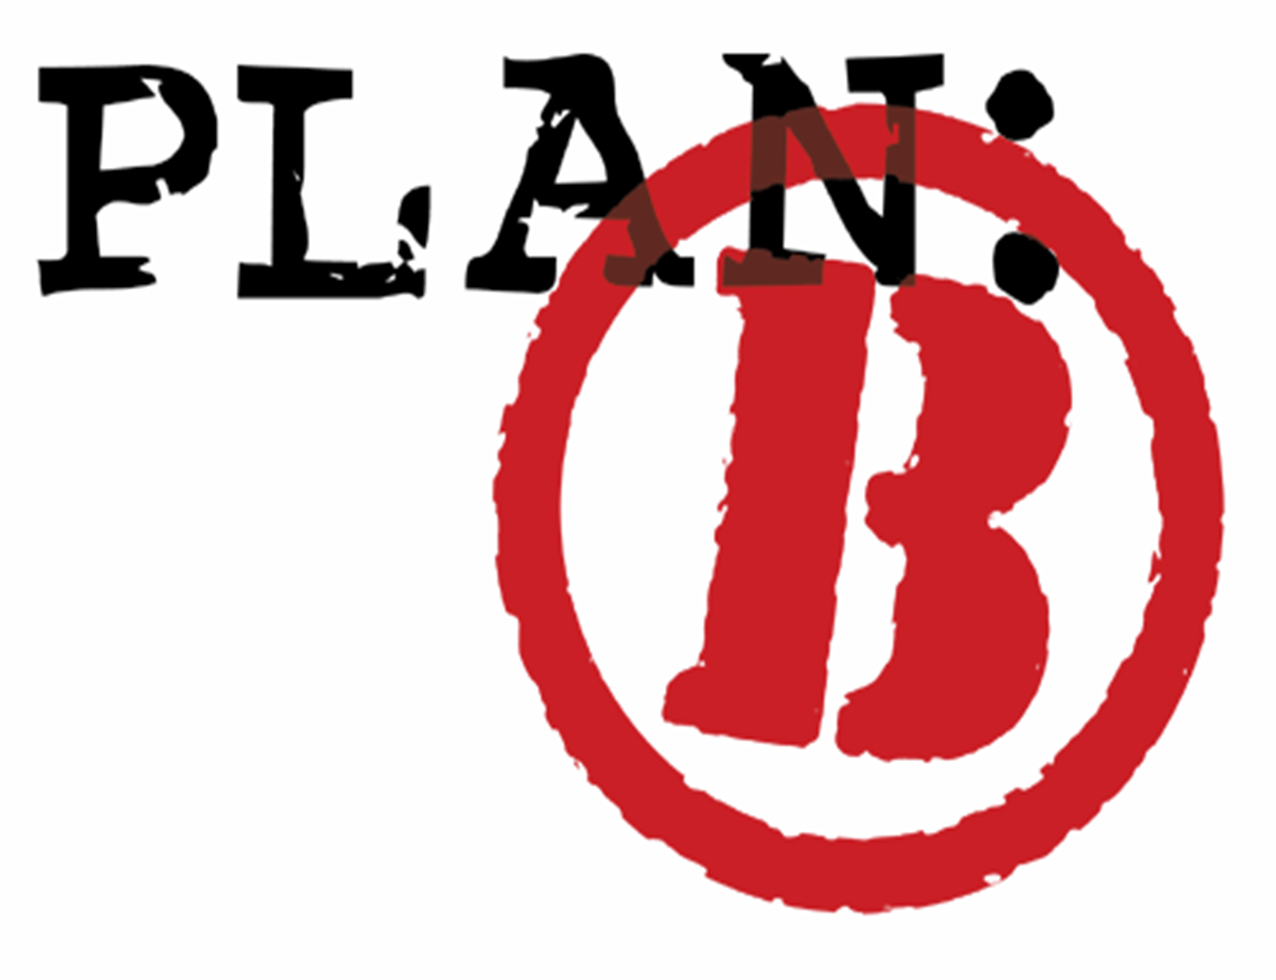 Plan B Png - Do you have a Plan B in case the world economies unravel? - THE ...